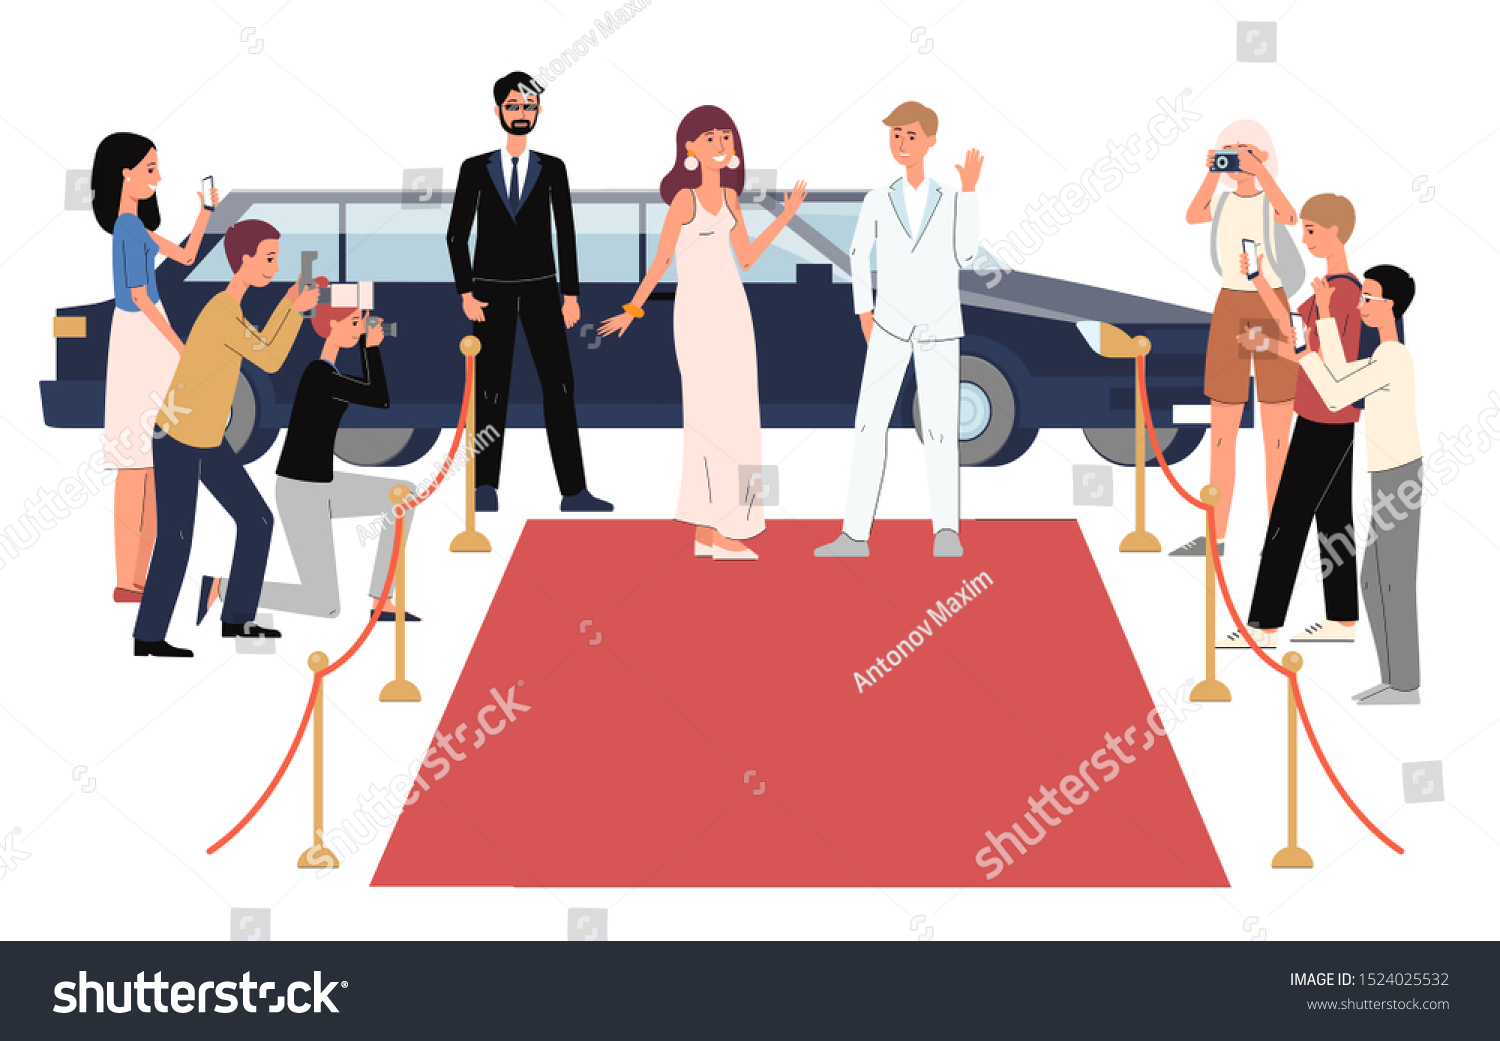 Cartoon Celebrity People Arriving Red Carpet Stock Vector Royalty Free 1524025532